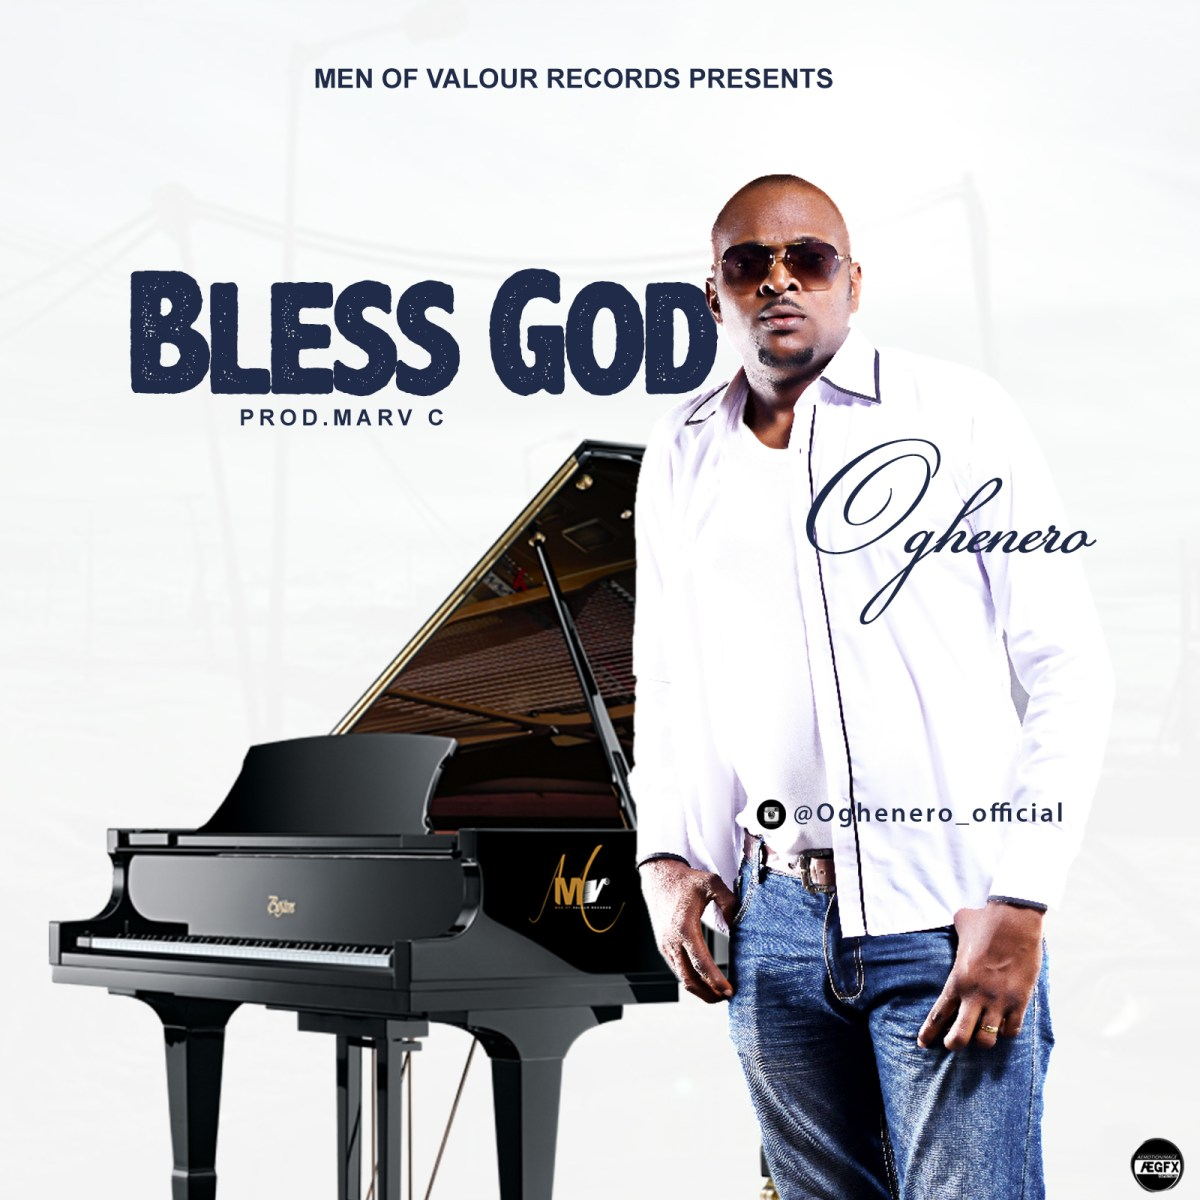 New Music: Bless God - Oghenero | @oghenerofficial